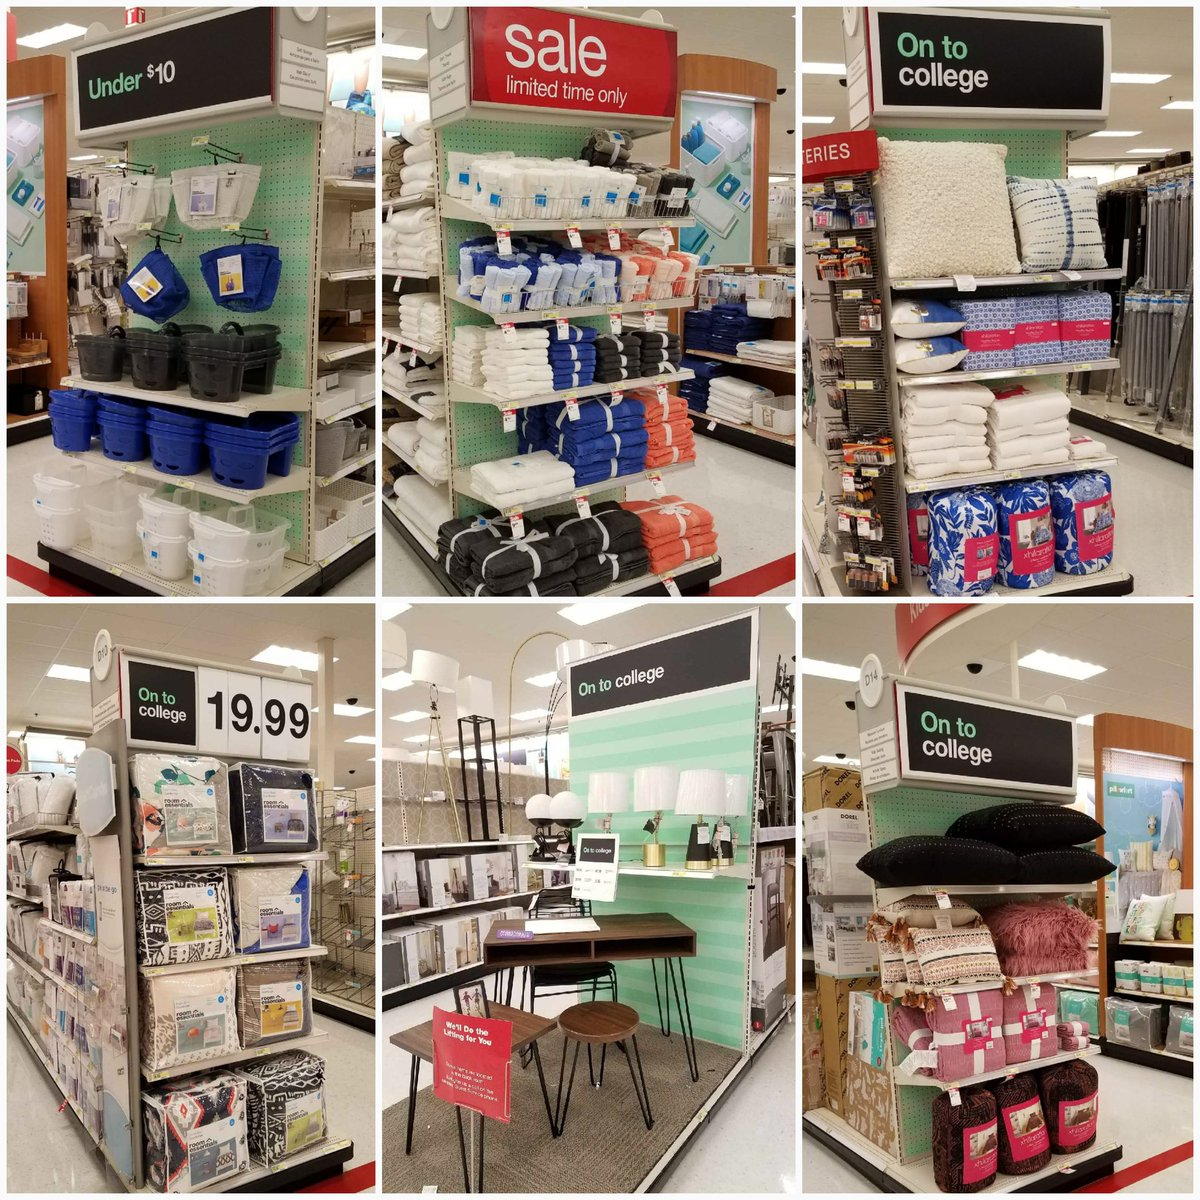 Tax free weekend at 887! @trevino_marina #D303 <br>http://pic.twitter.com/k8FUs2cpLR